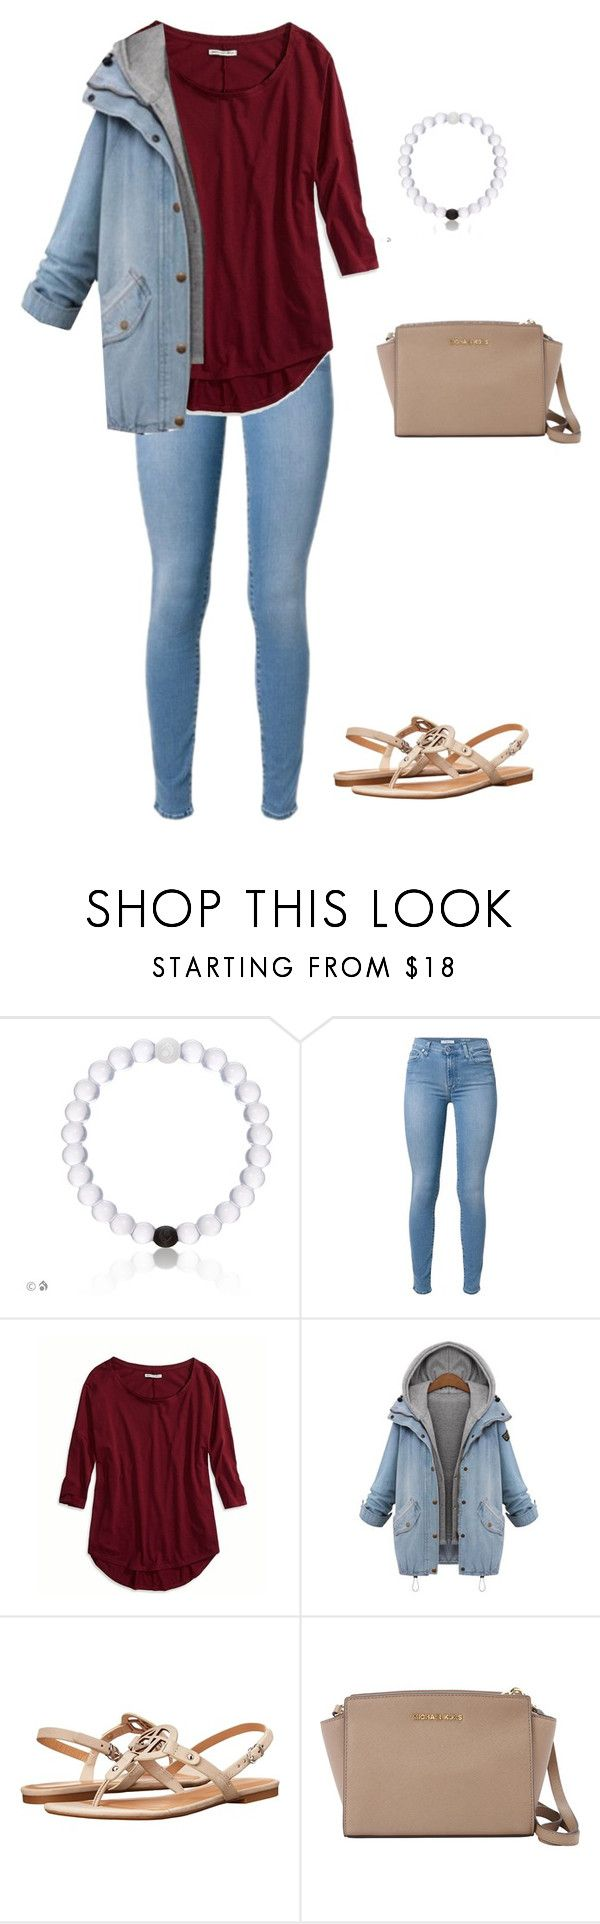 """""""Eating popcorn while watching sofia the first"""" by jackelinhernandez ❤ liked on Polyvore featuring American Eagle Outfitters, Armani Jeans and MICHAEL Michael Kors"""